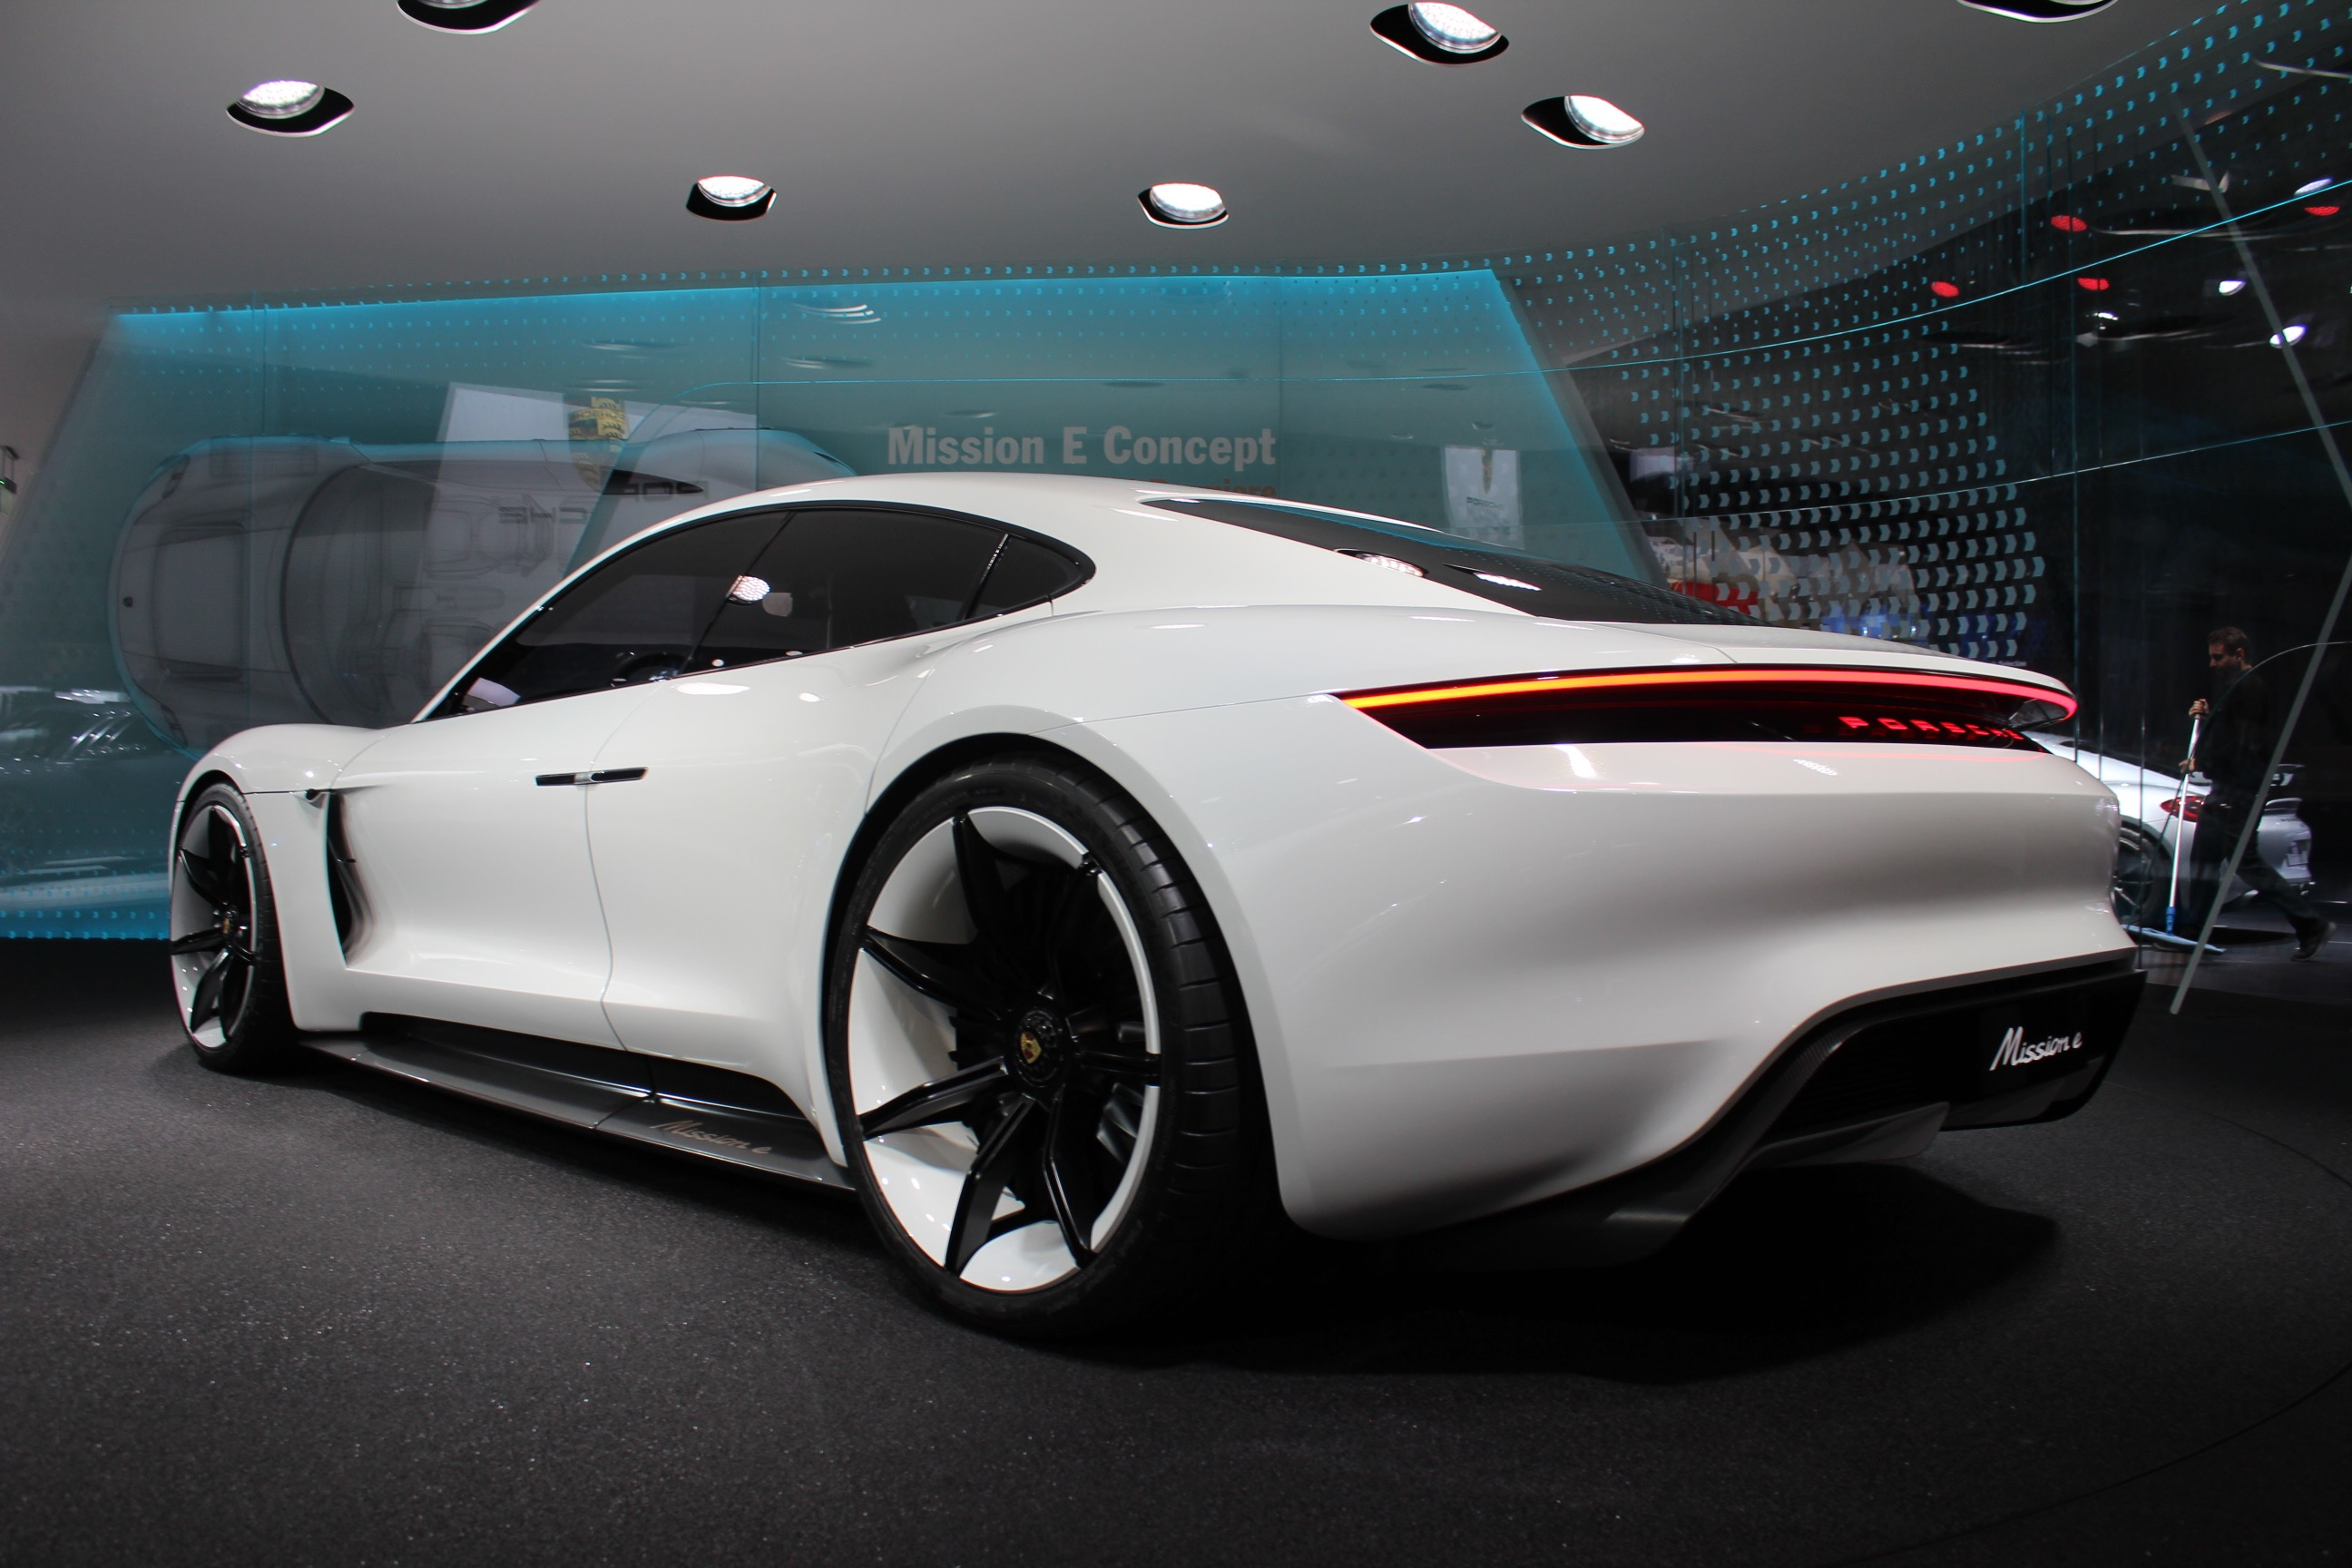 Porsche Design Chief Talks About The Mission E Concept Video